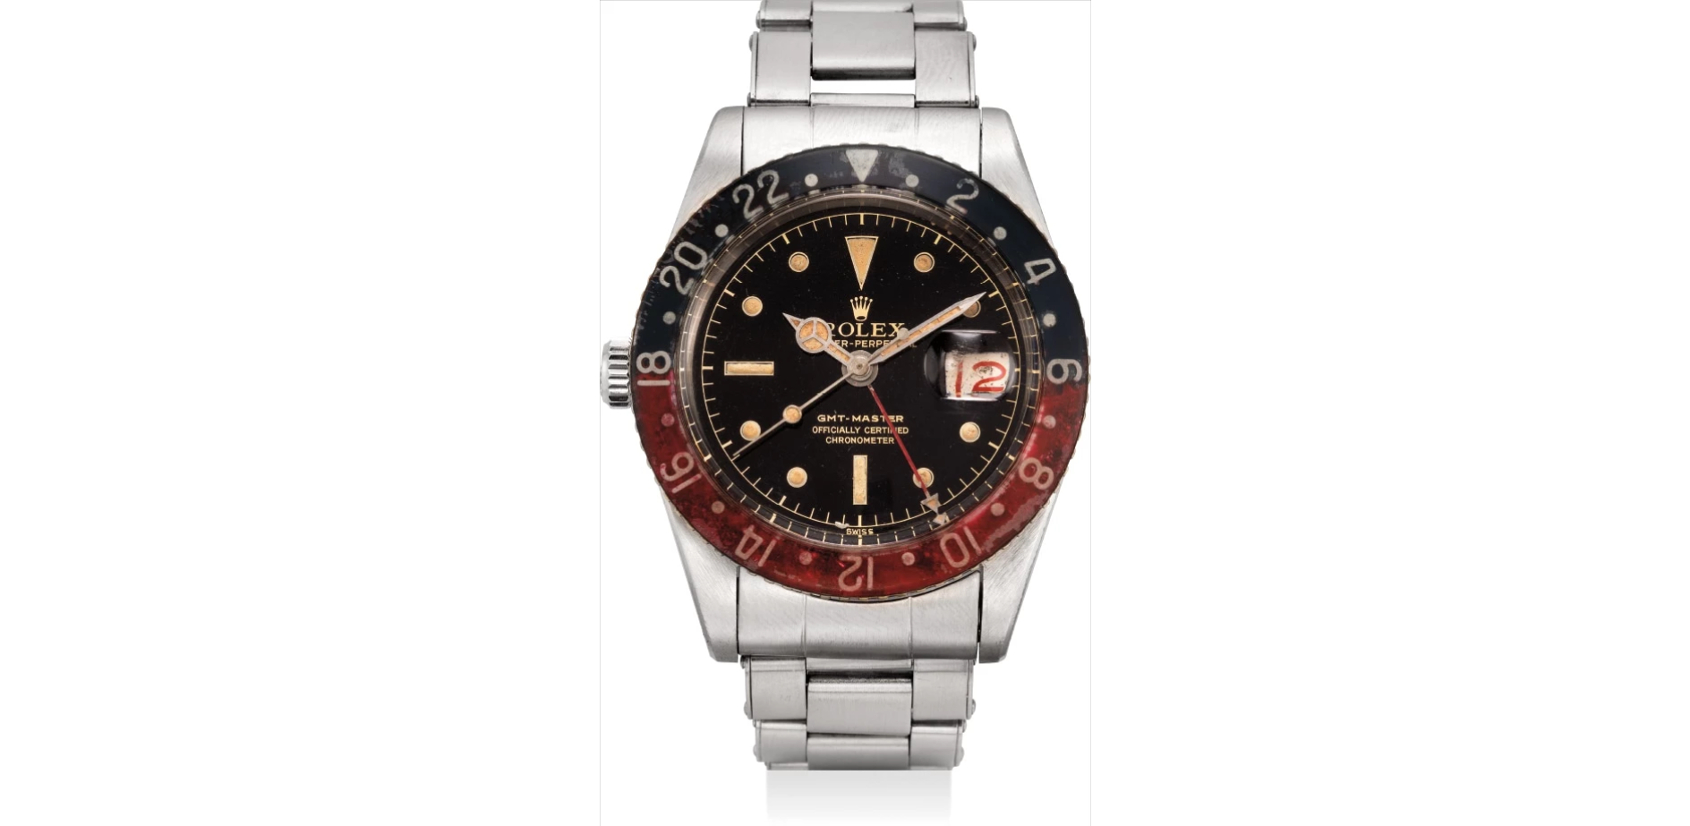 NEWS: This season's last watch auction delivers 4 unique watches you've probably never seen, and may never see again